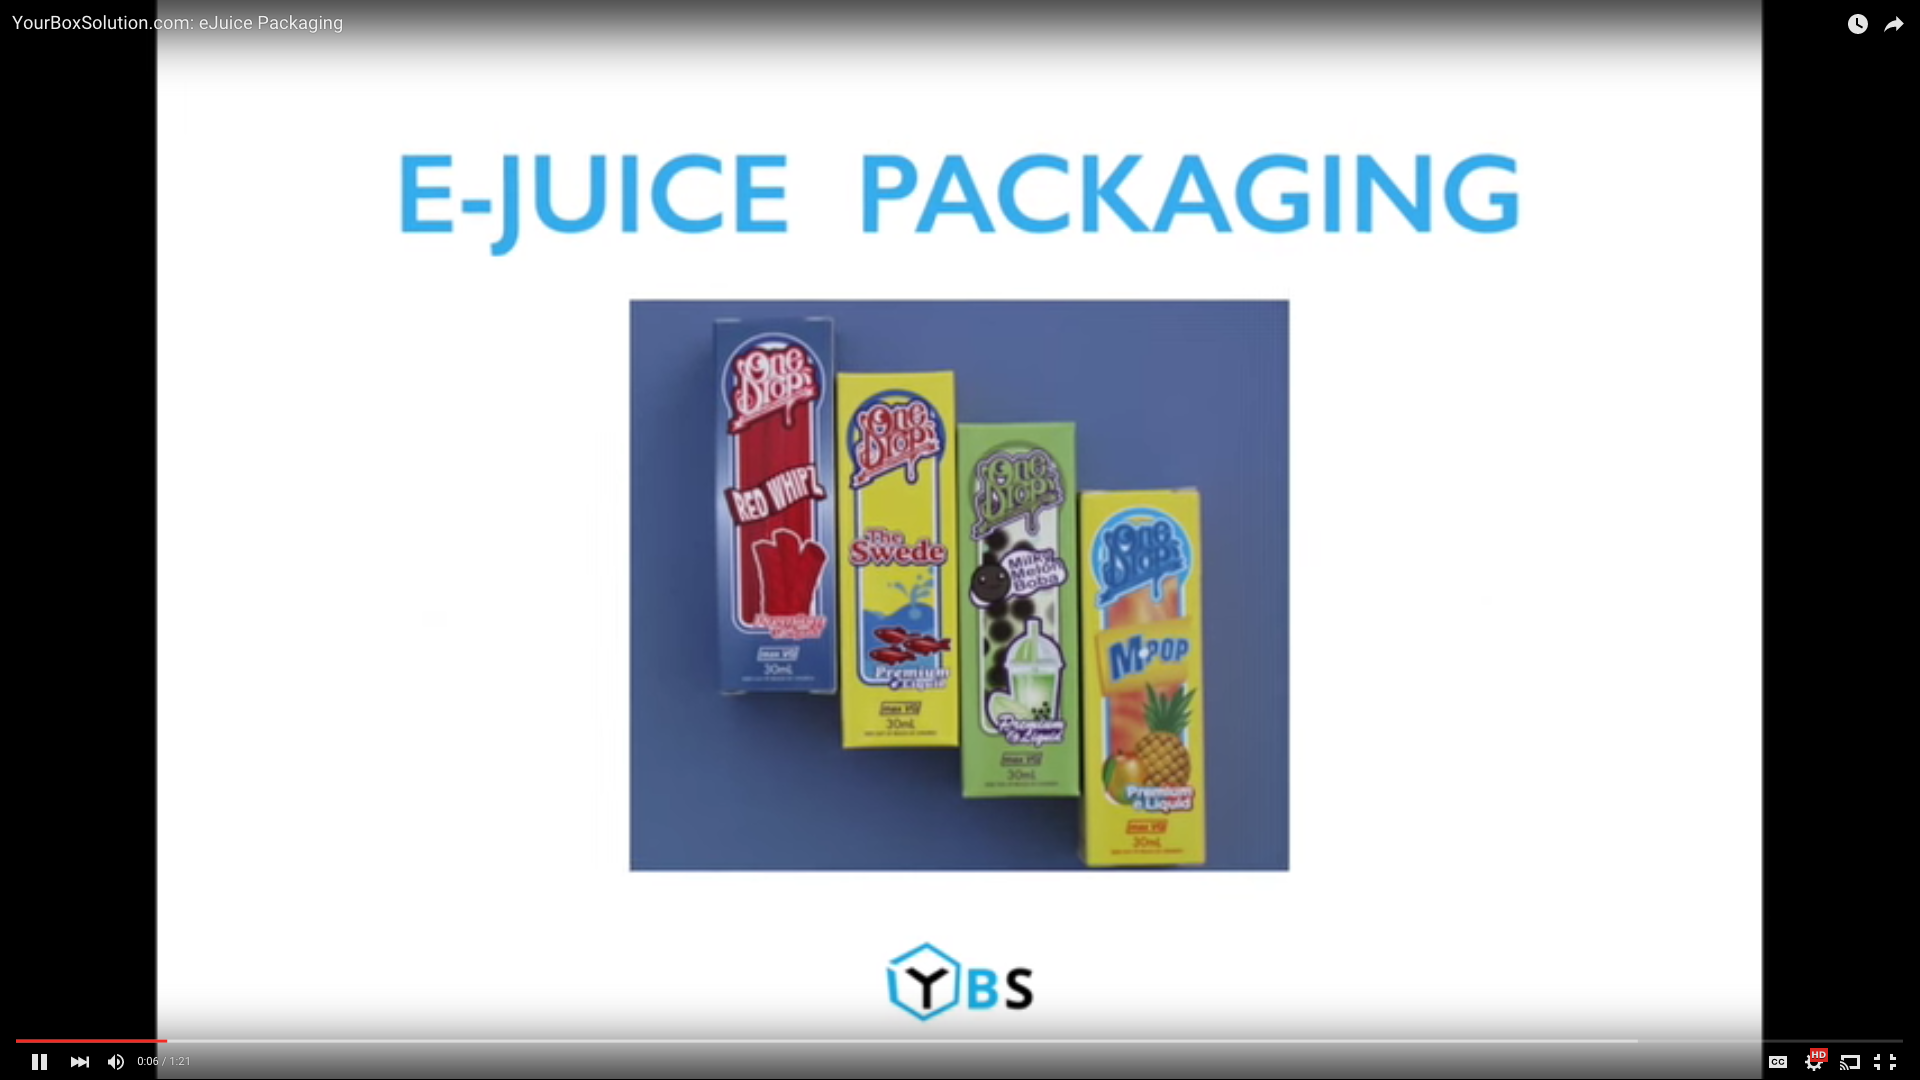 eJuice Packaging from YourBoxSolution.com